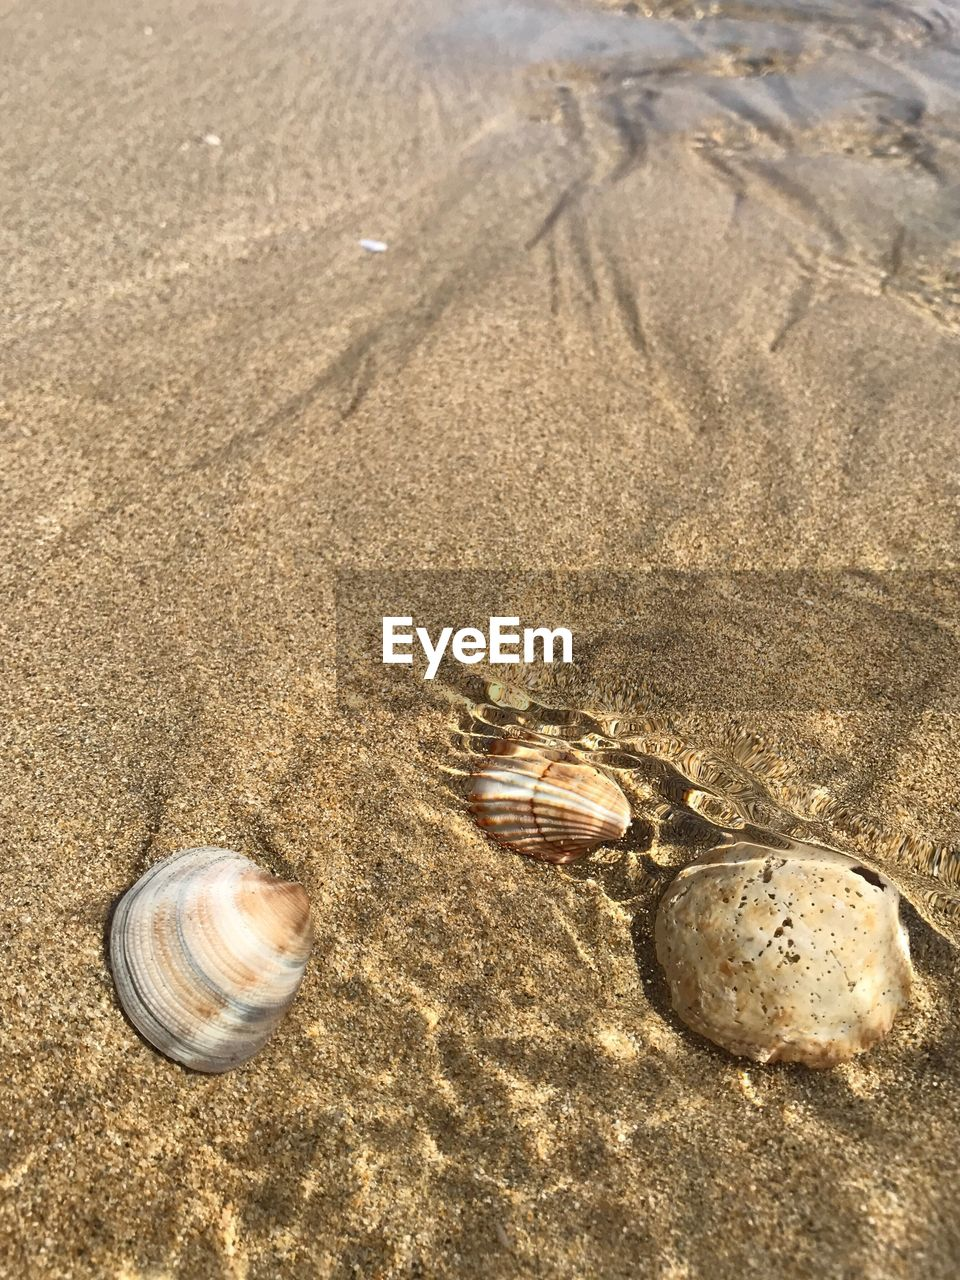 sand, animal shell, beach, animal themes, nature, animals in the wild, no people, high angle view, outdoors, seashell, day, gastropod, sunlight, one animal, hermit crab, sea life, close-up, beauty in nature